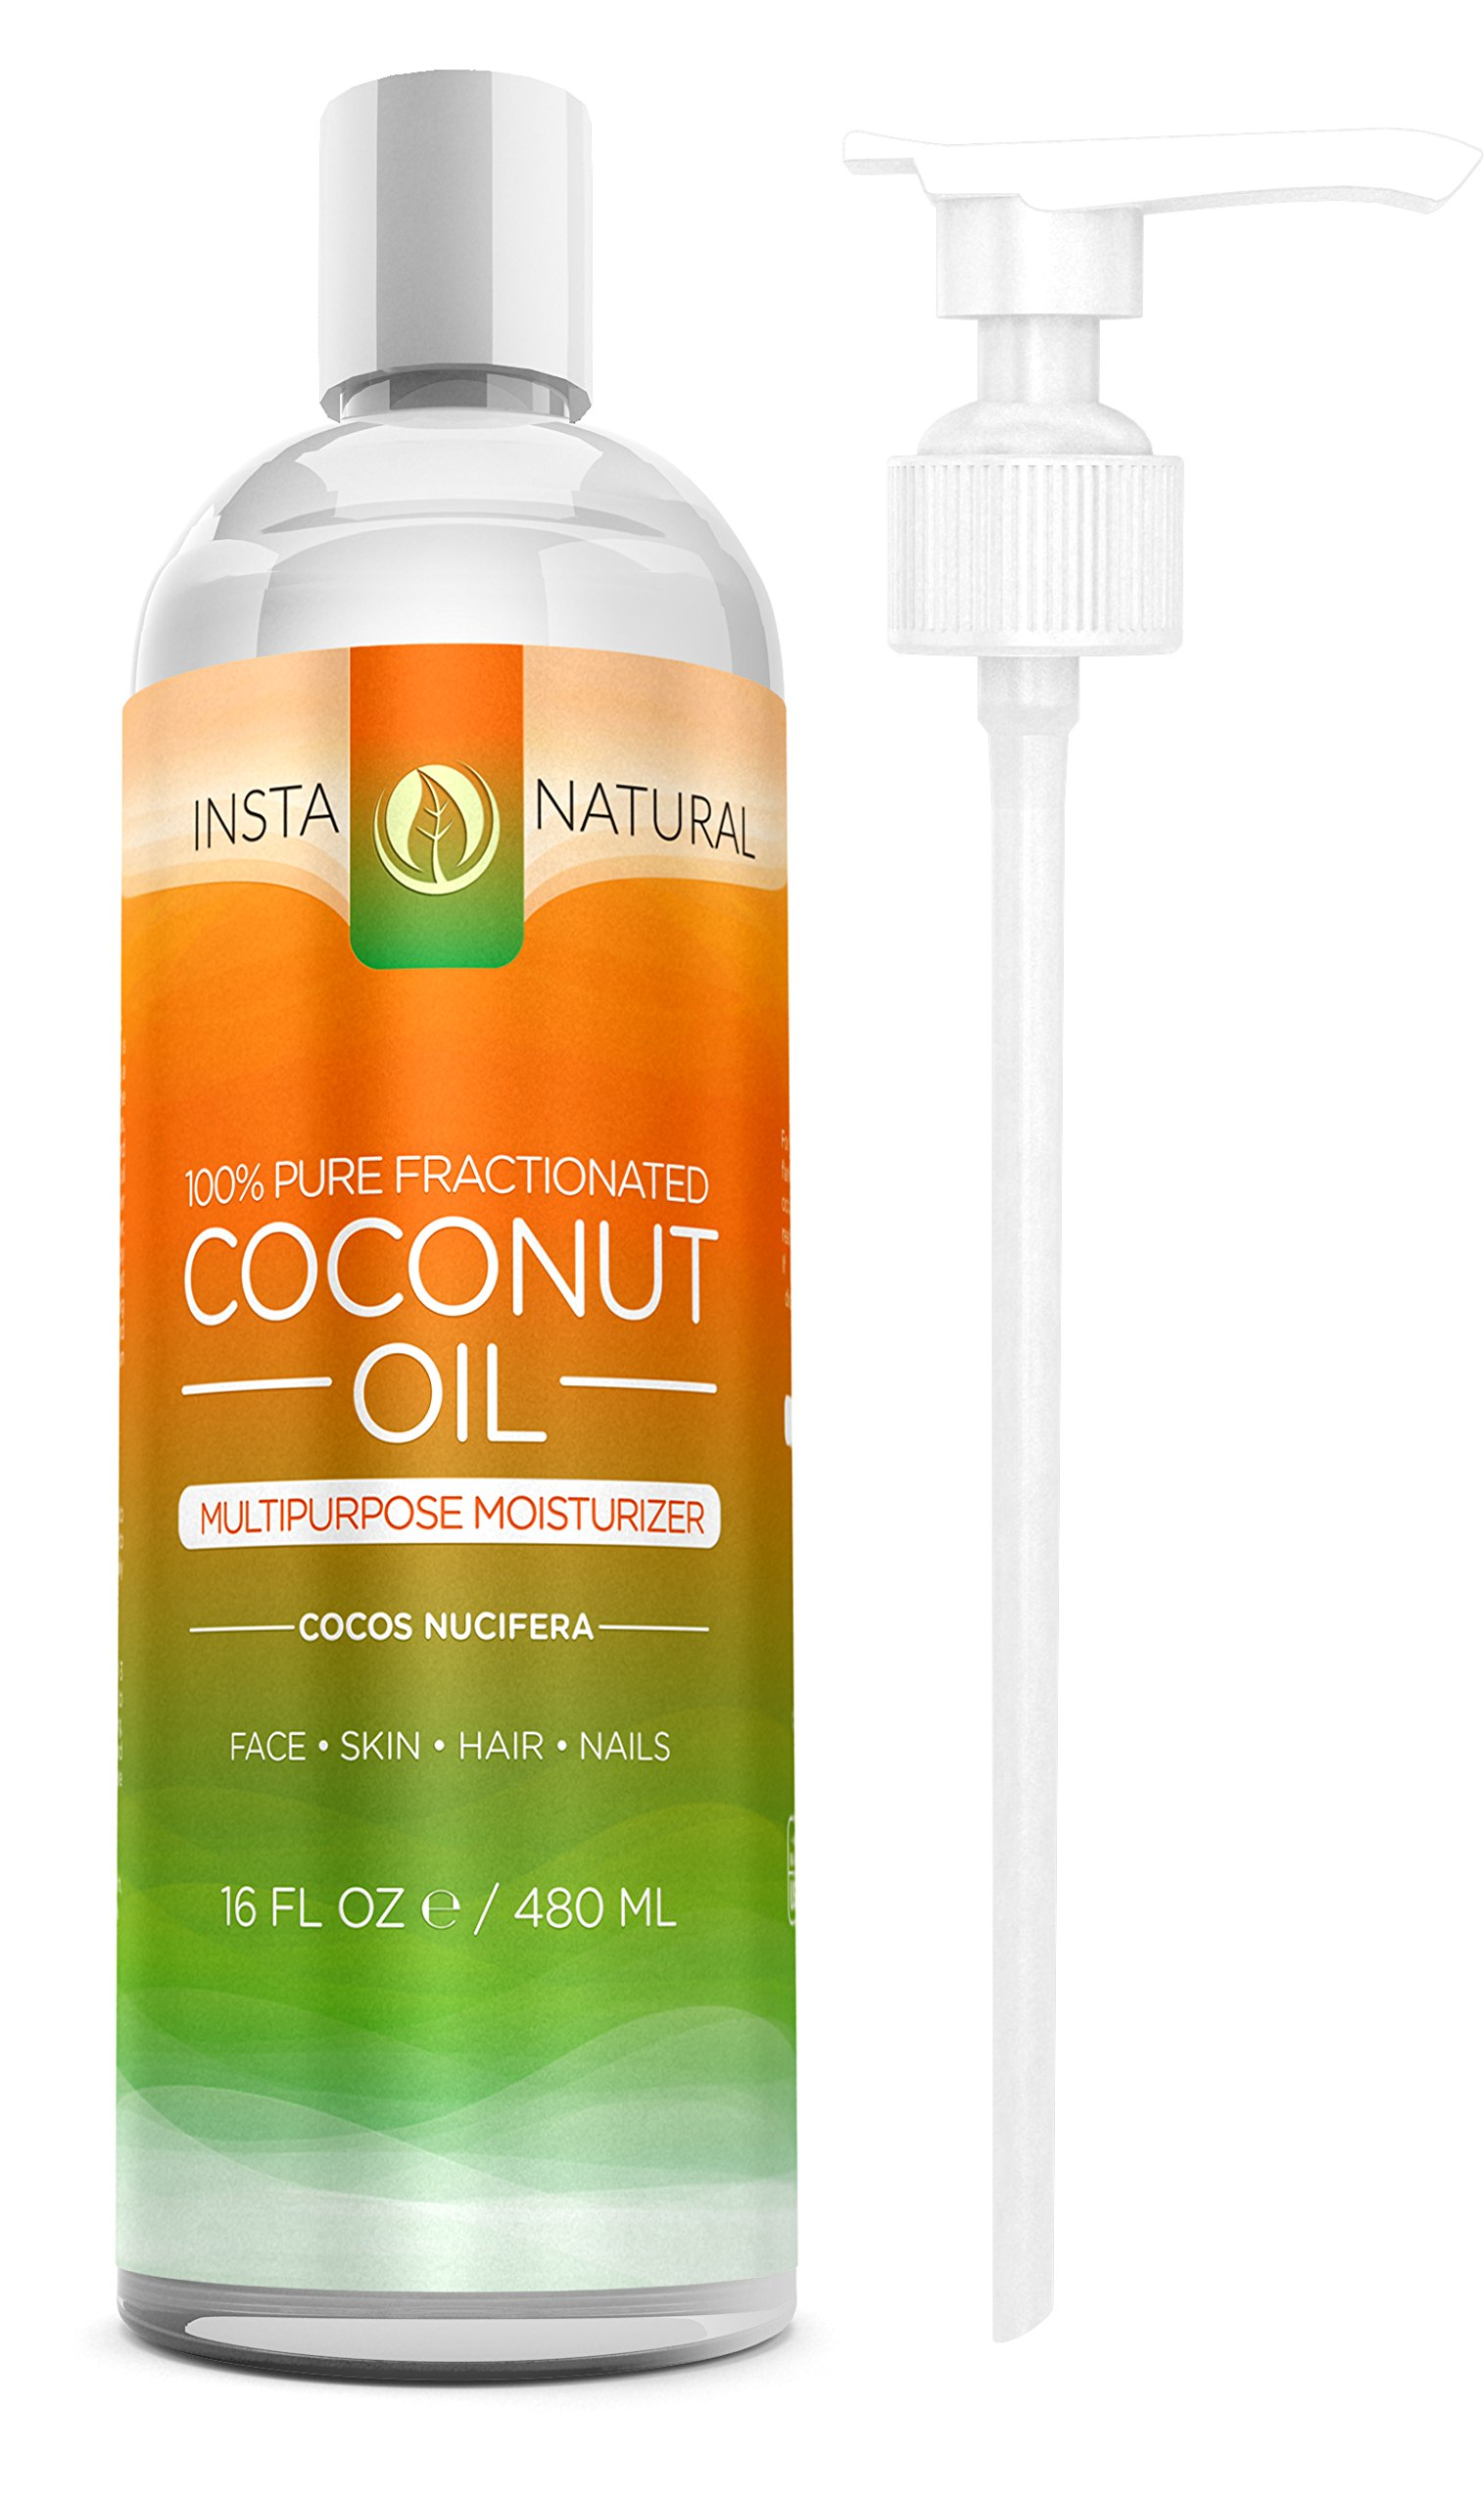 Fractionated coconut oil for face